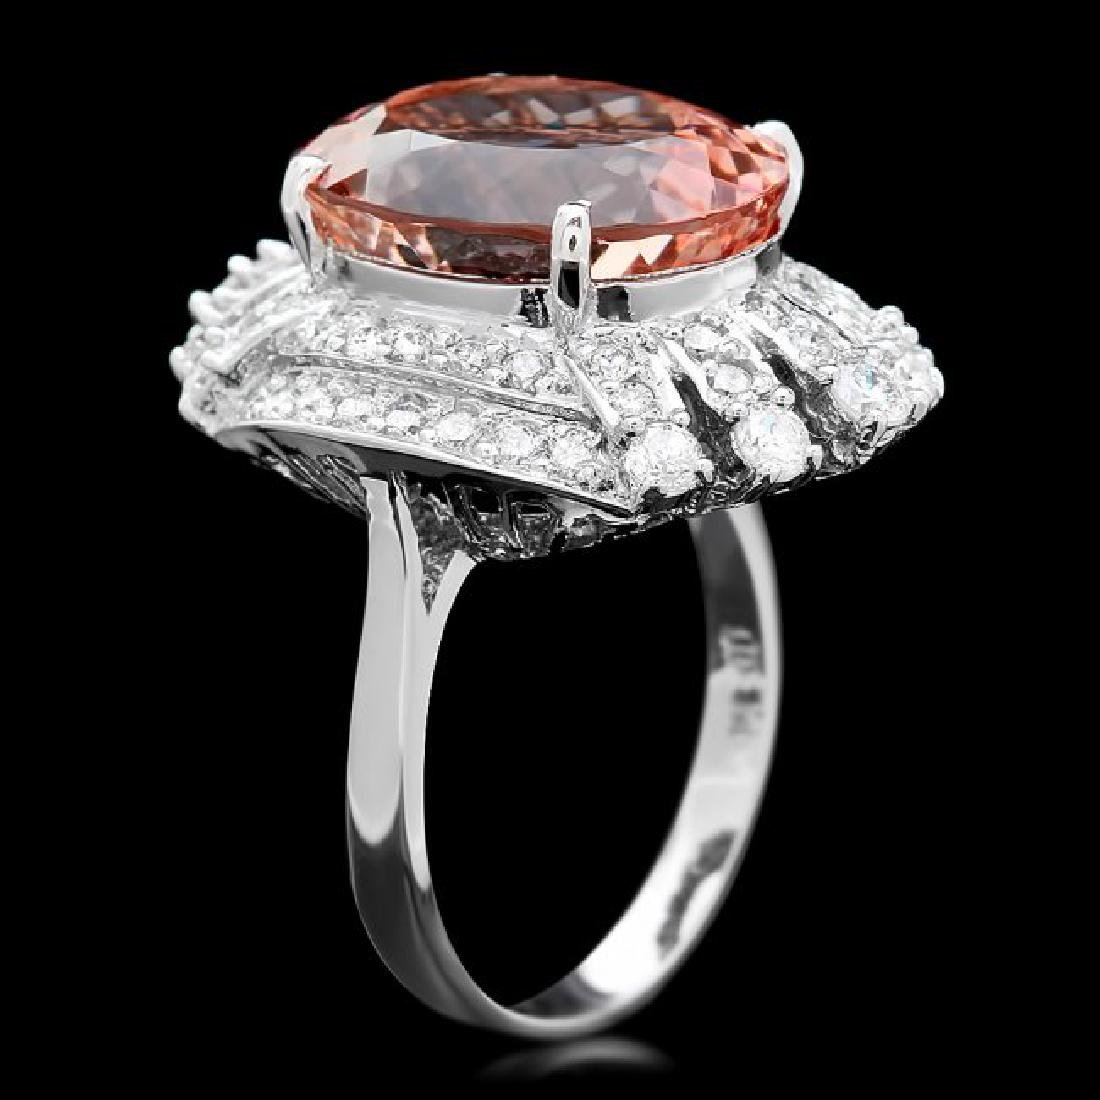 14k Gold 10.40ct Morganite 1.30ct Diamond Ring - 2